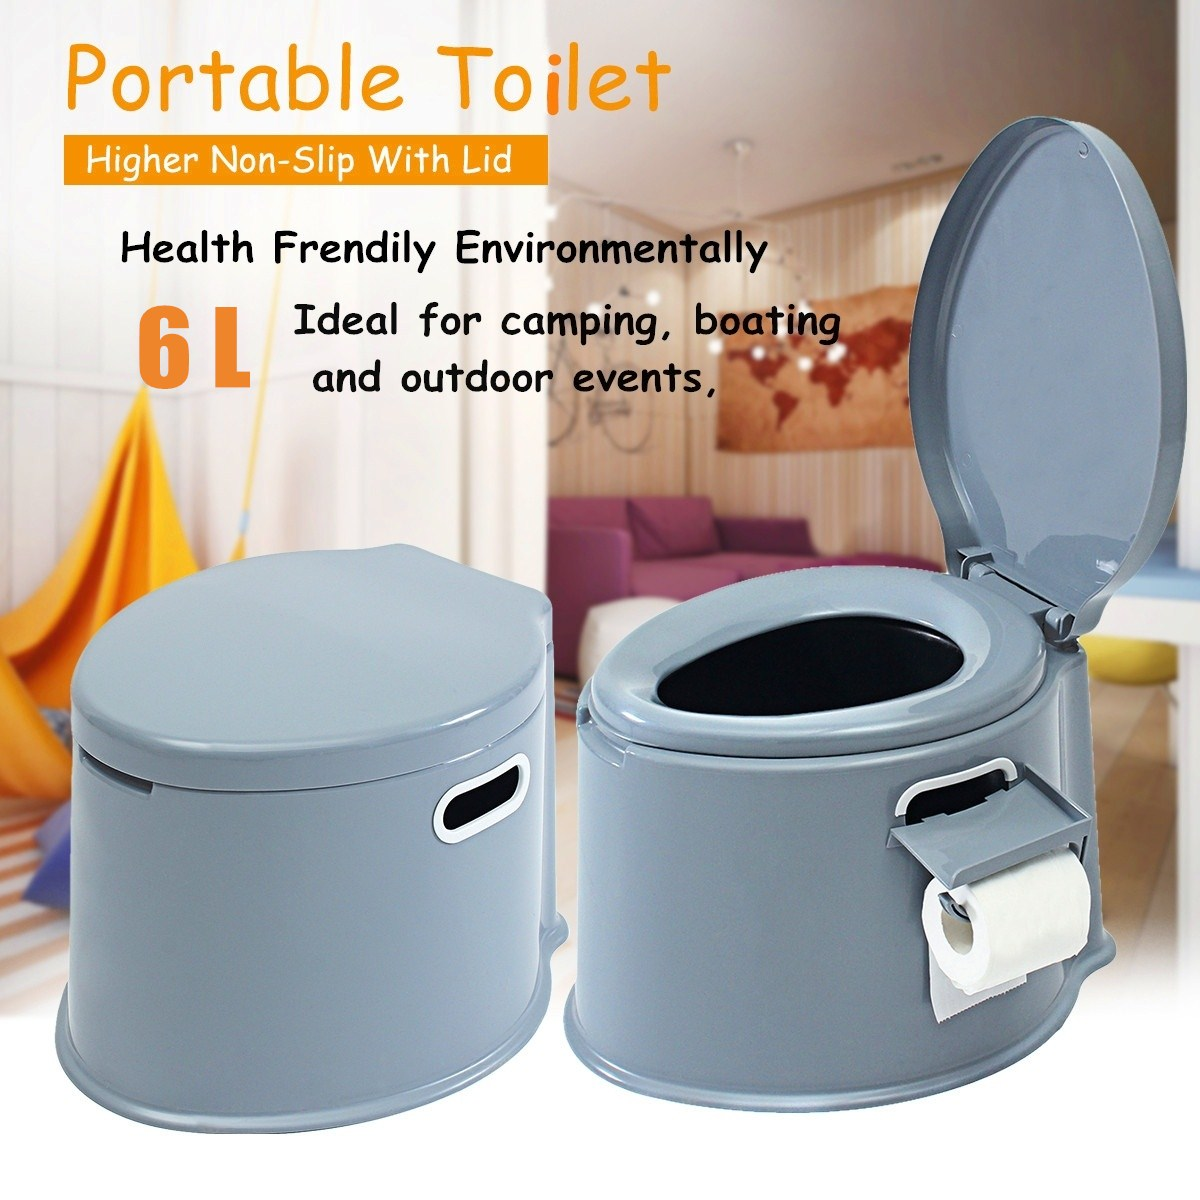 Portable 6L Large Adult Toilet For Outdoor Camping Hiking Elderly Travel Disabled Handicapped